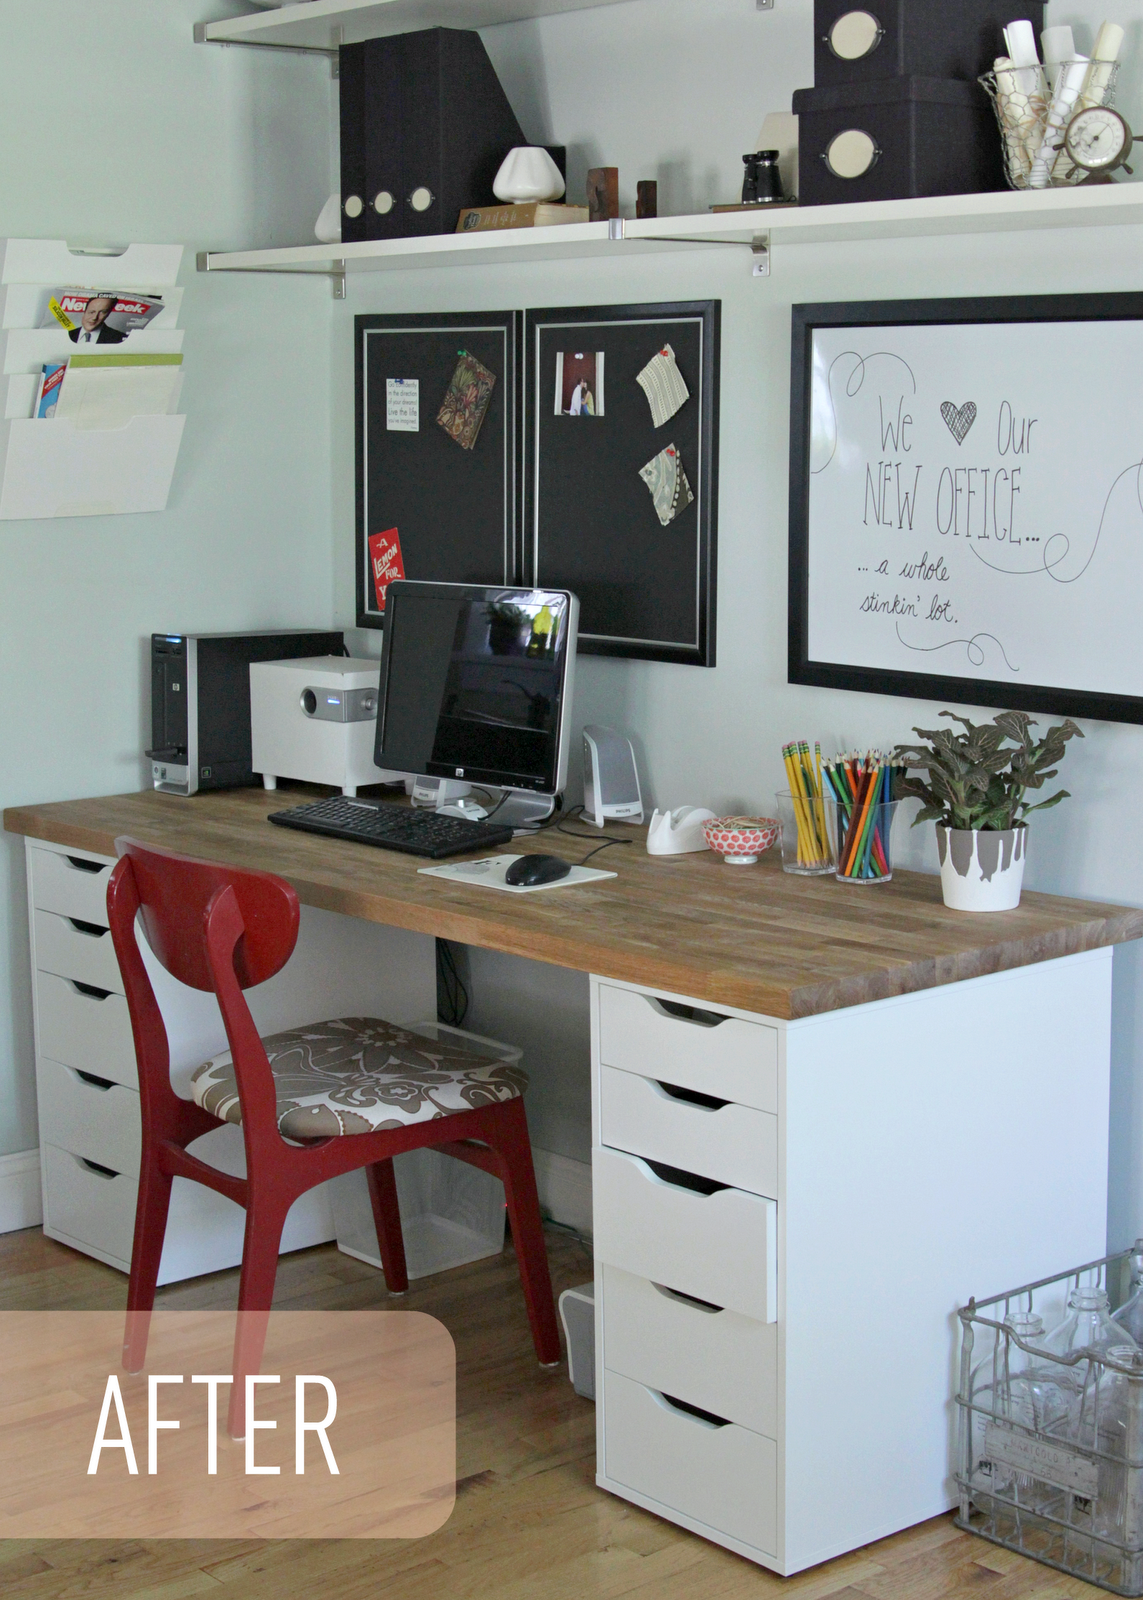 Ikea Home Office Youtube The Lovely Cupboard Our Ikea Office Makeover NumerÄr